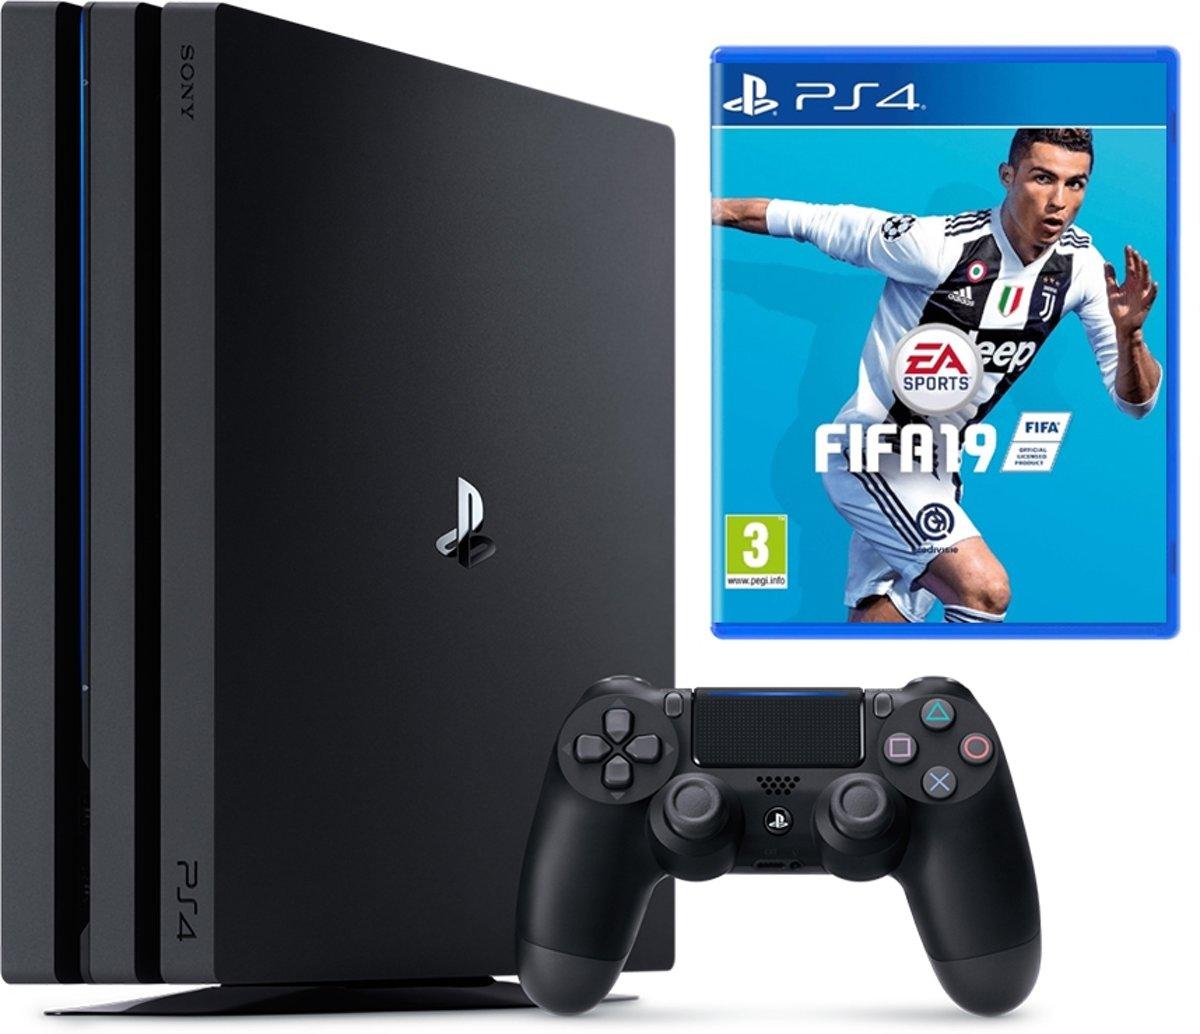 Sony PlayStation 4 Pro Console - incl. FIFA 19 - 1 TB